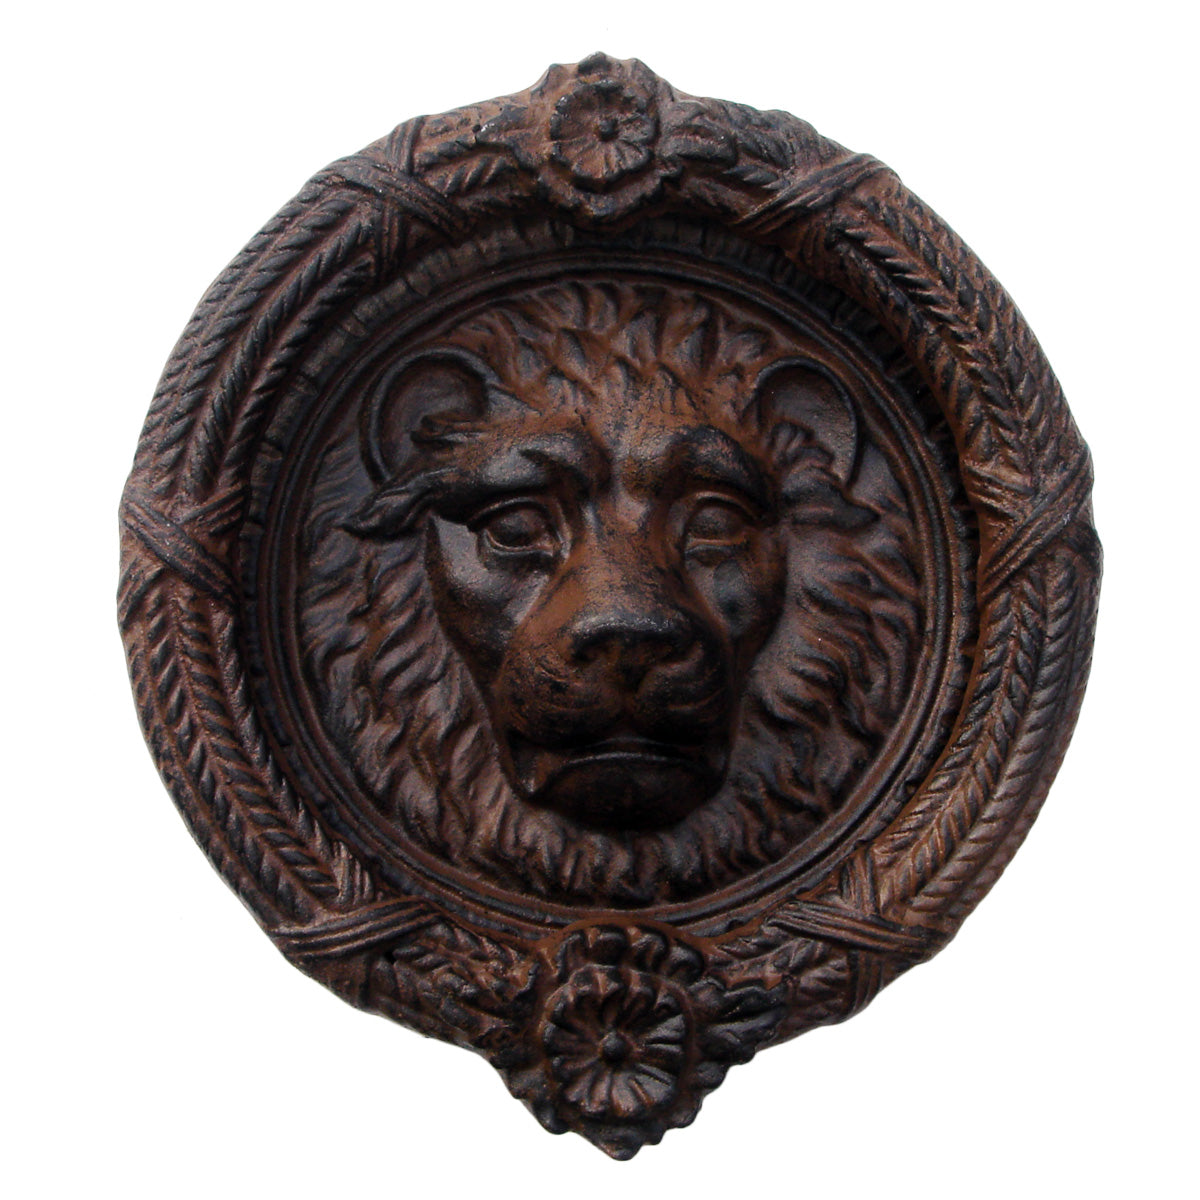 Antique Style Cast Iron Lionu0027s Head Door Knocker